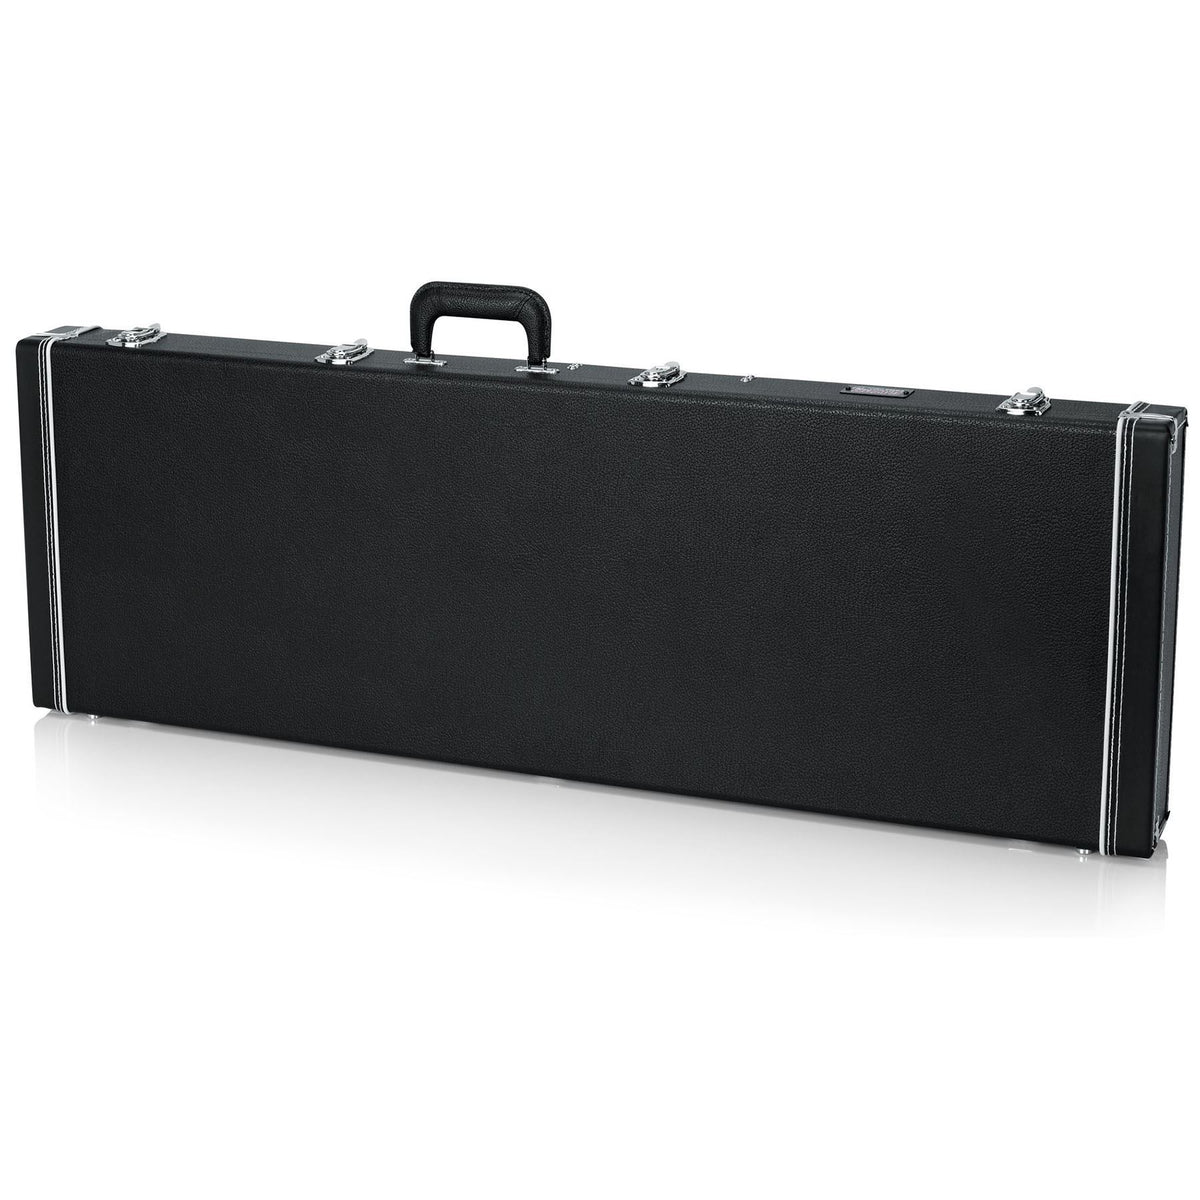 Gator Cases Deluxe Wood Case for Schecter STILETTO CUSTOM-4, CUSTOM-5, CUSTOM-6 Bass Guitars